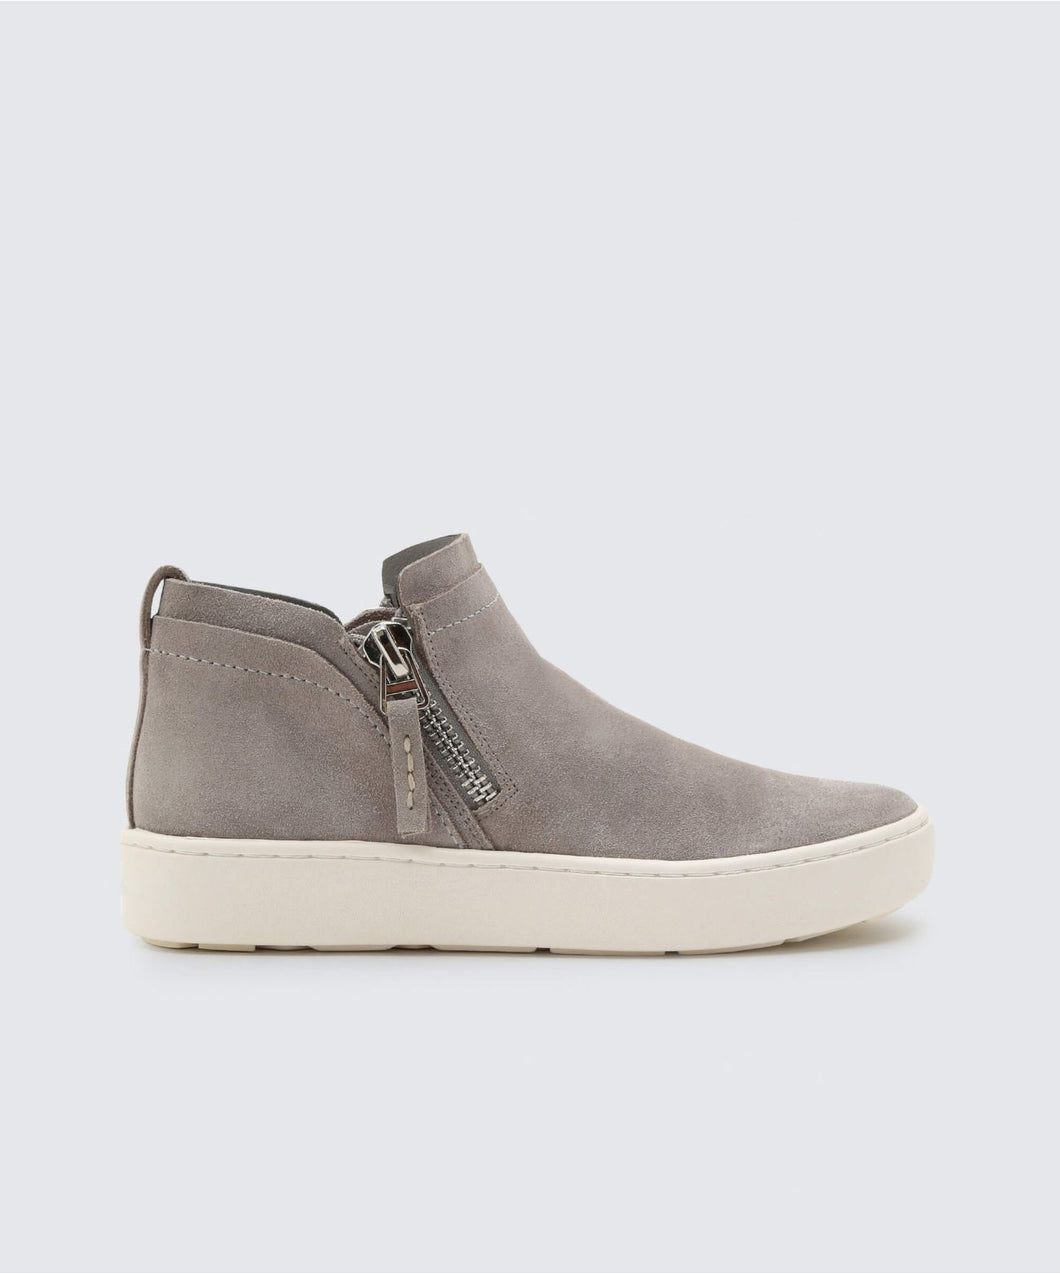 TOBEE SNEAKERS IN SMOKE -   Dolce Vita